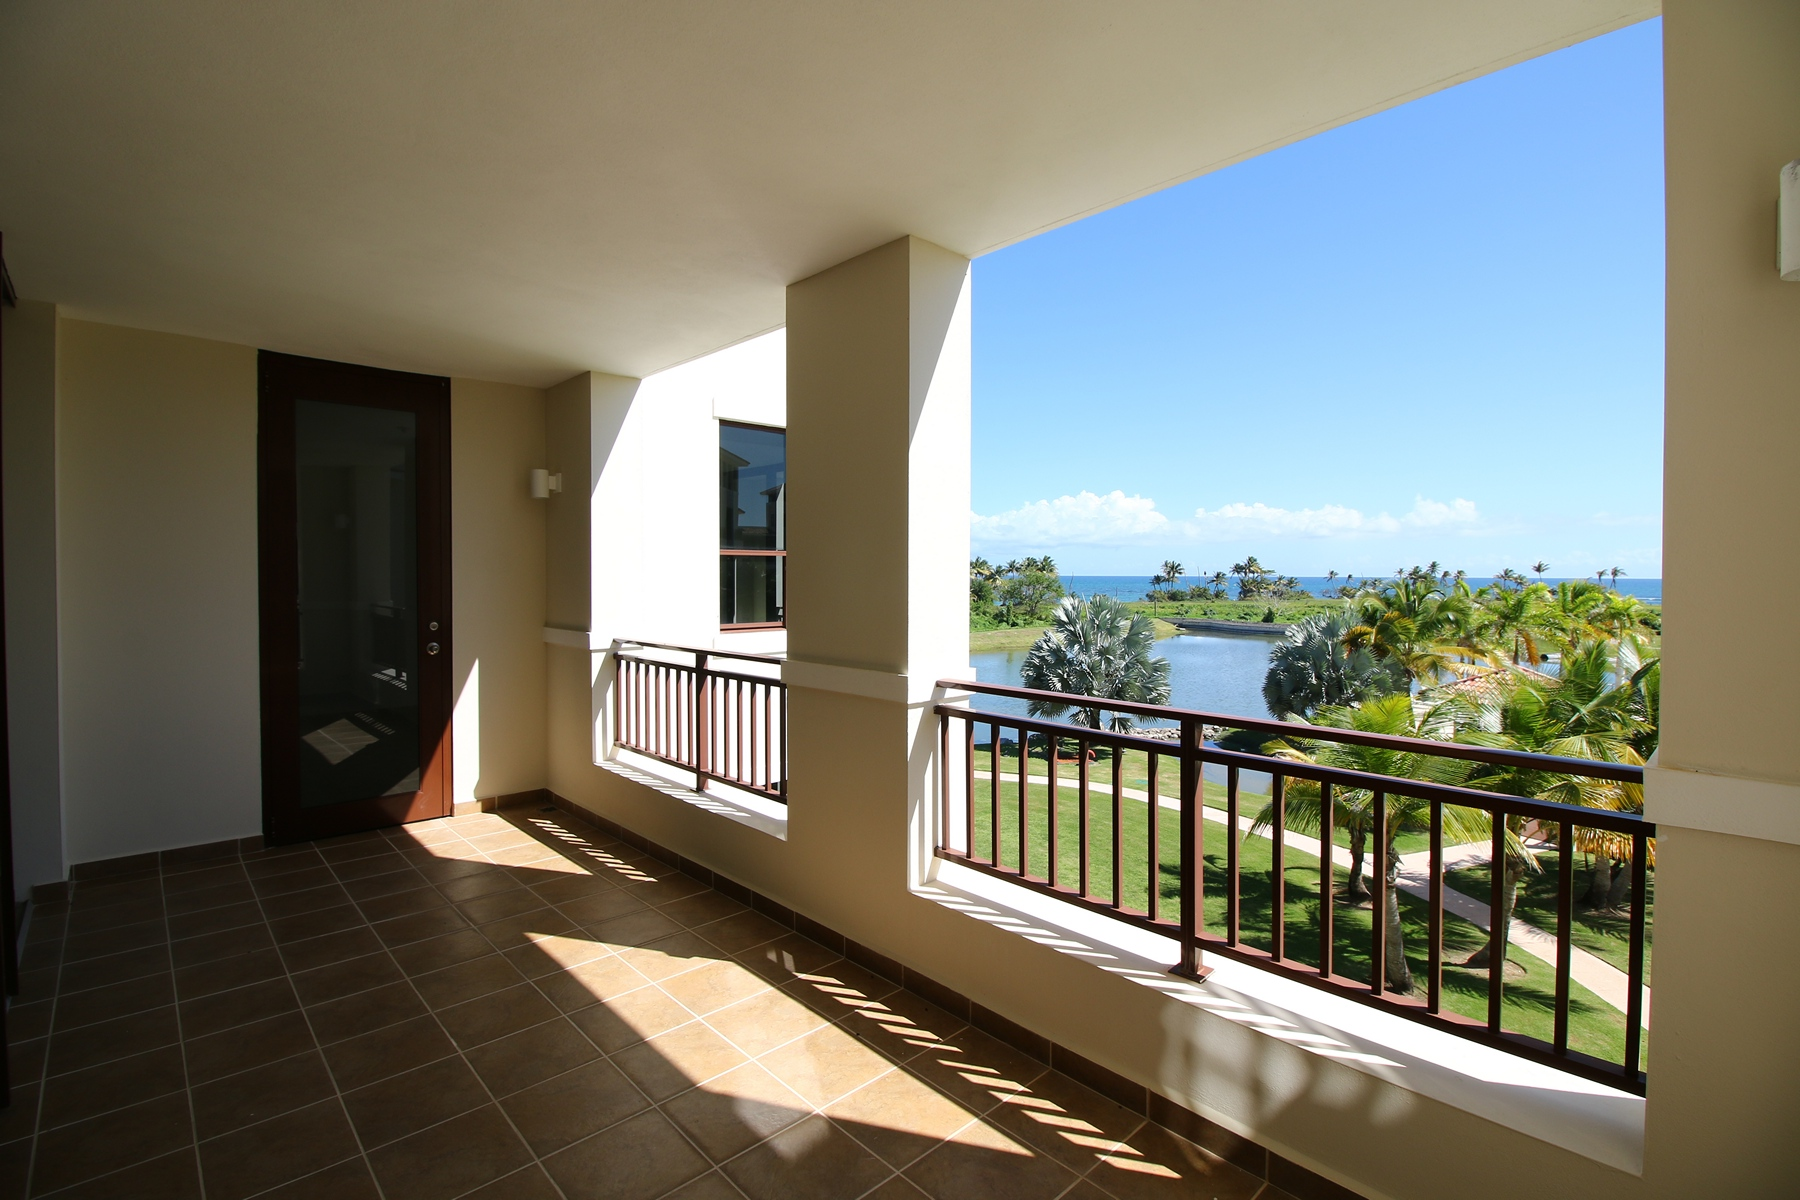 Additional photo for property listing at Residence 222 at 238 Candelero Drive 238 Candelero Drive, Apt 222 Solarea Beach Resort and Yacht Club Palmas Del Mar, Puerto Rico 00791 Porto Rico